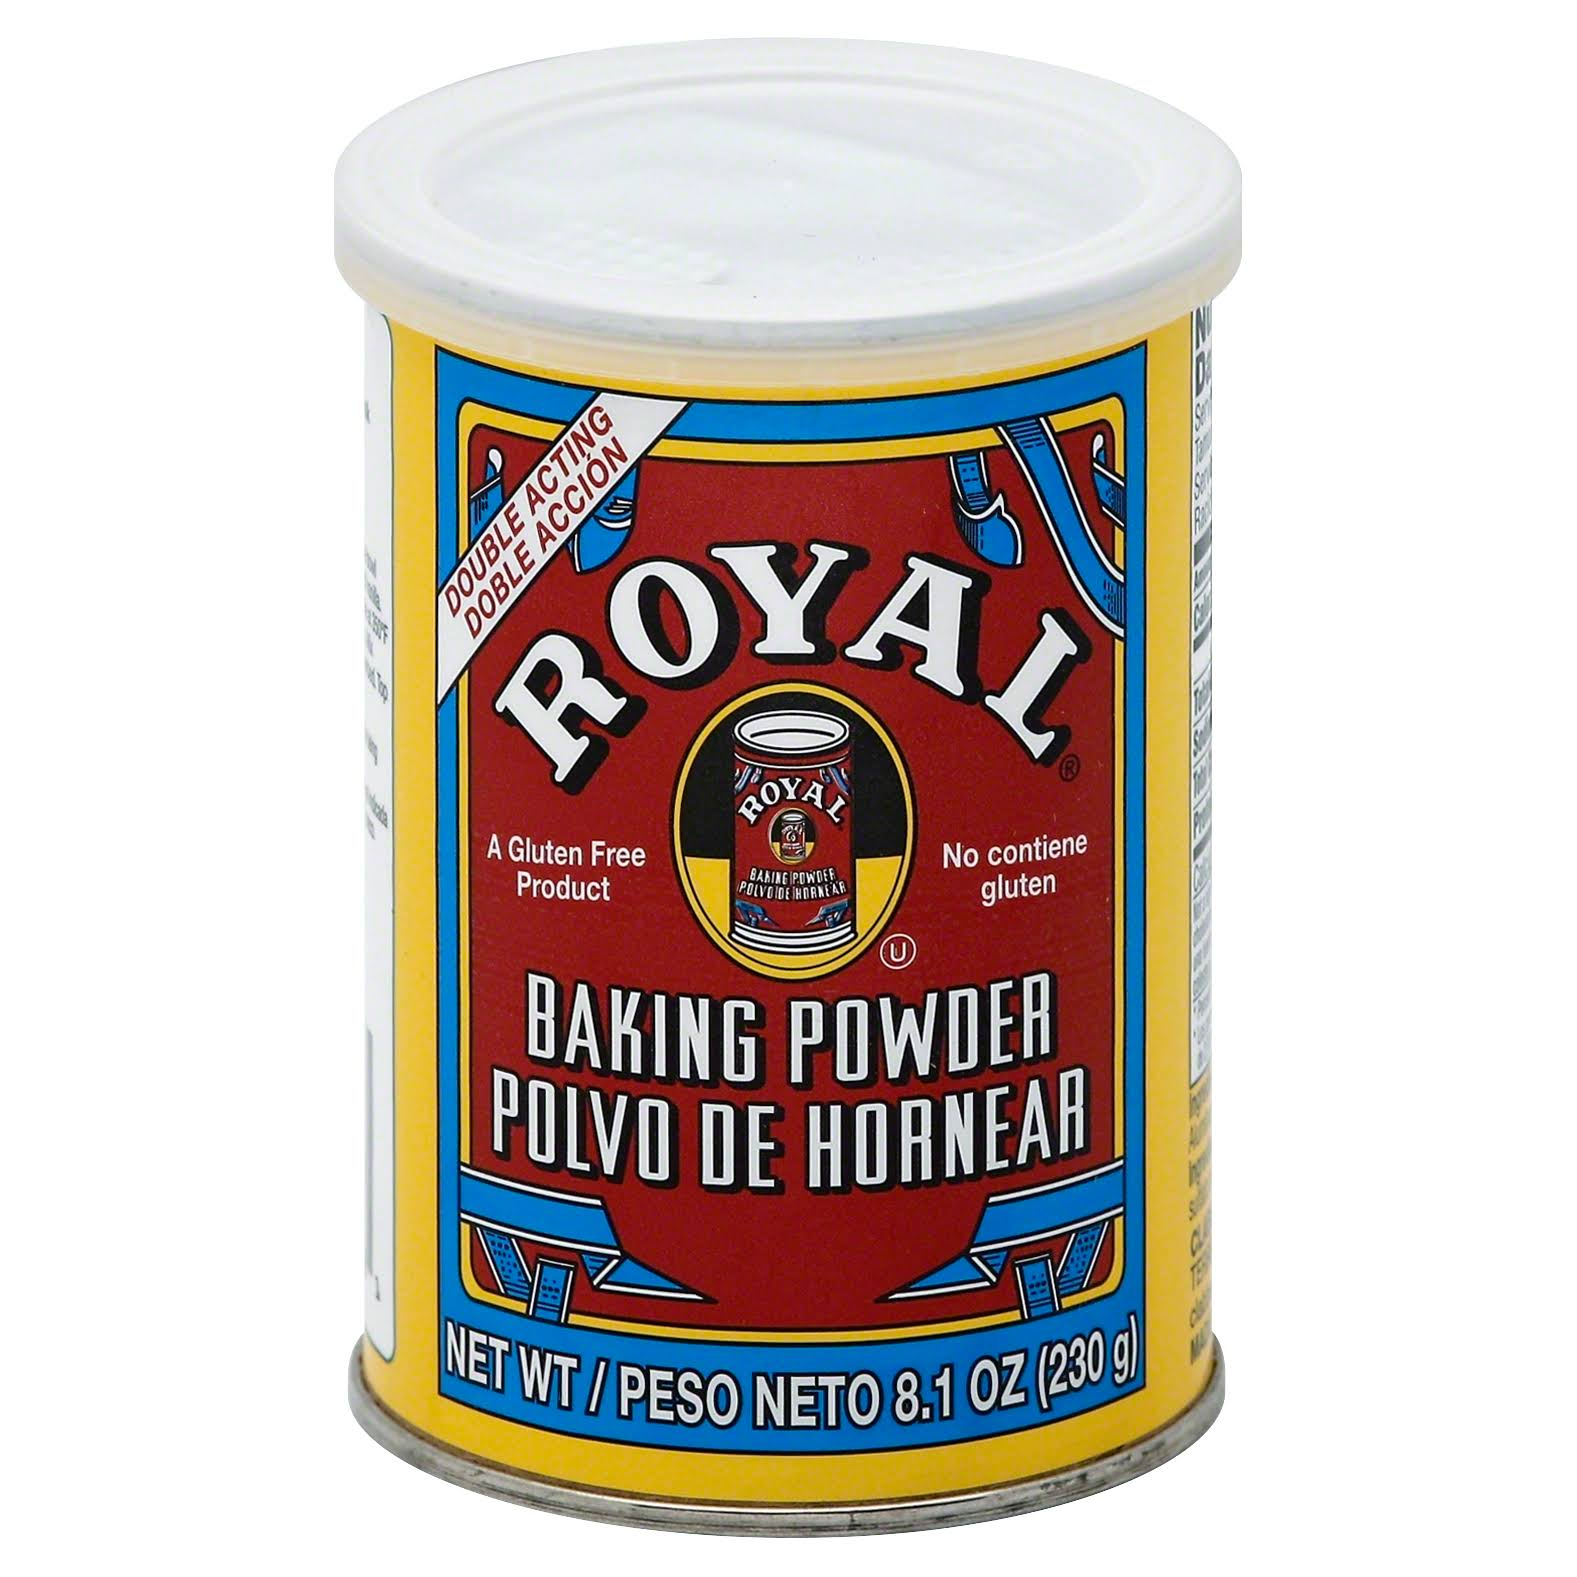 Royal Baking Powder - 8.1 oz